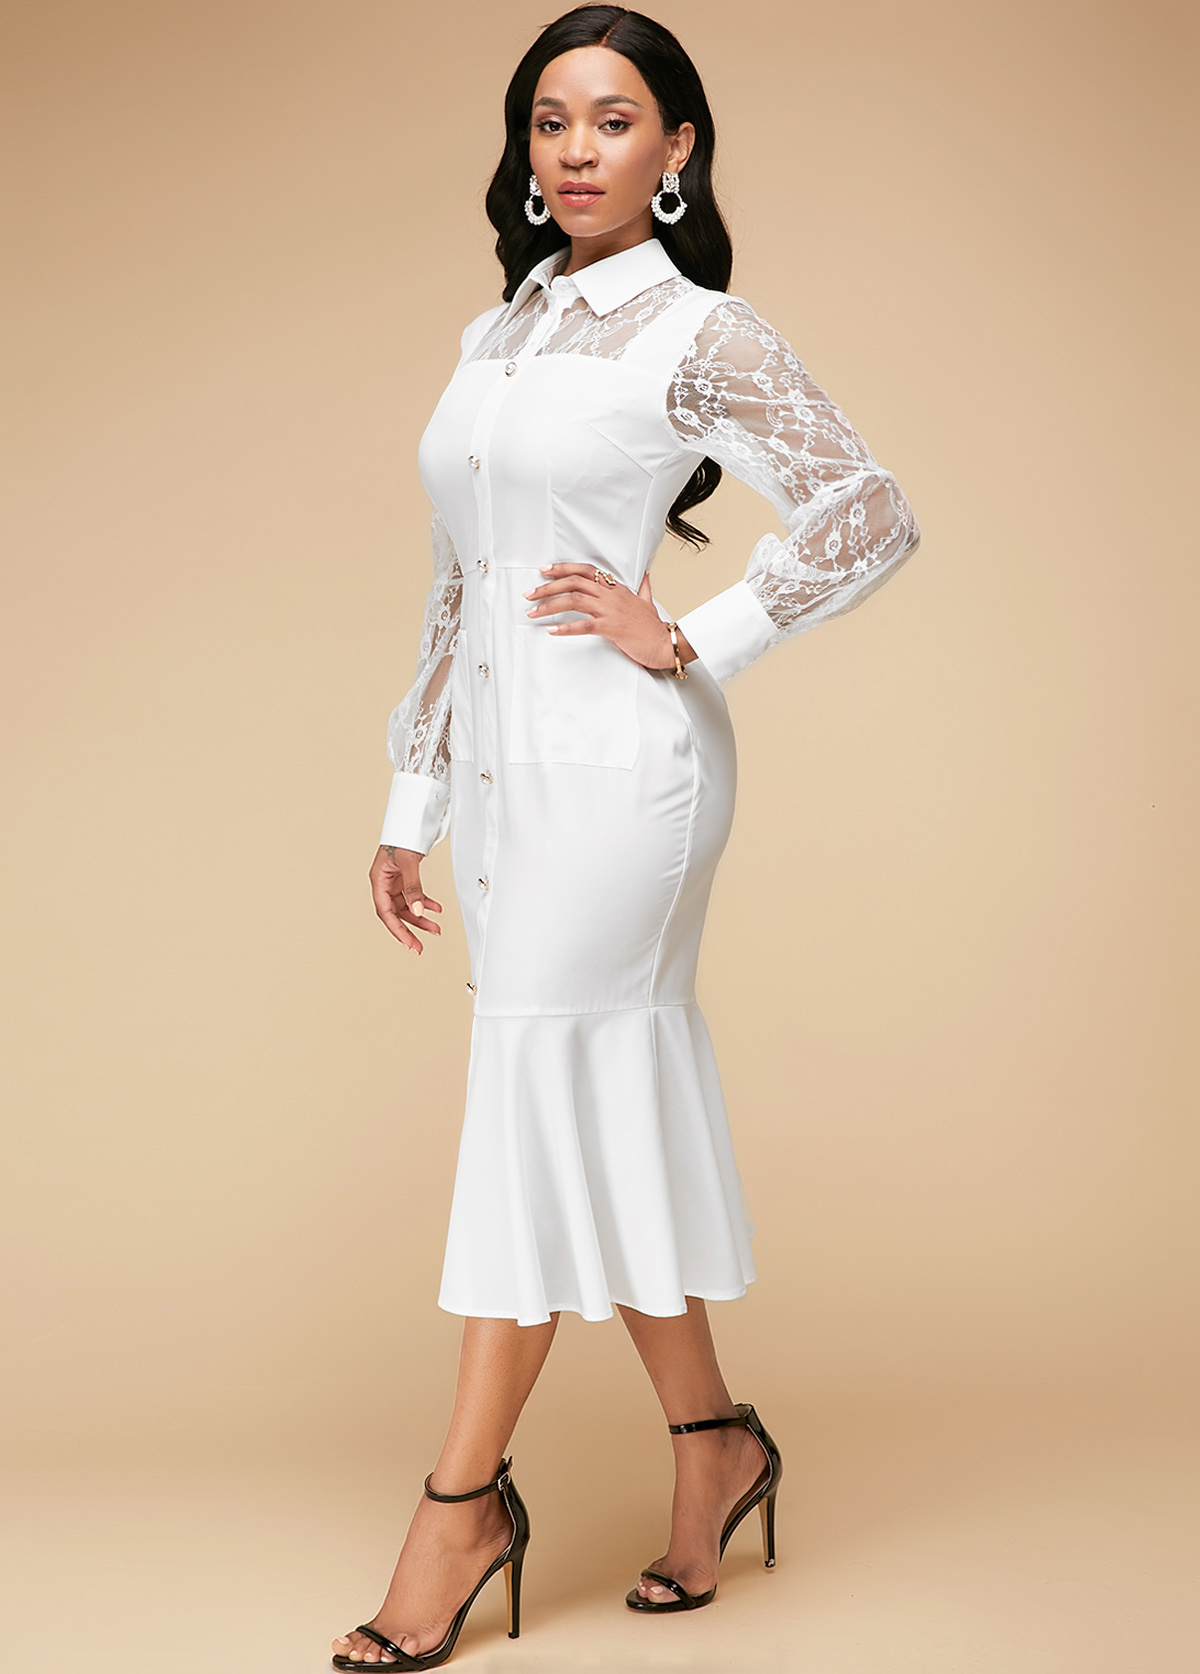 Ruffle Hem White Lace Panel Dress